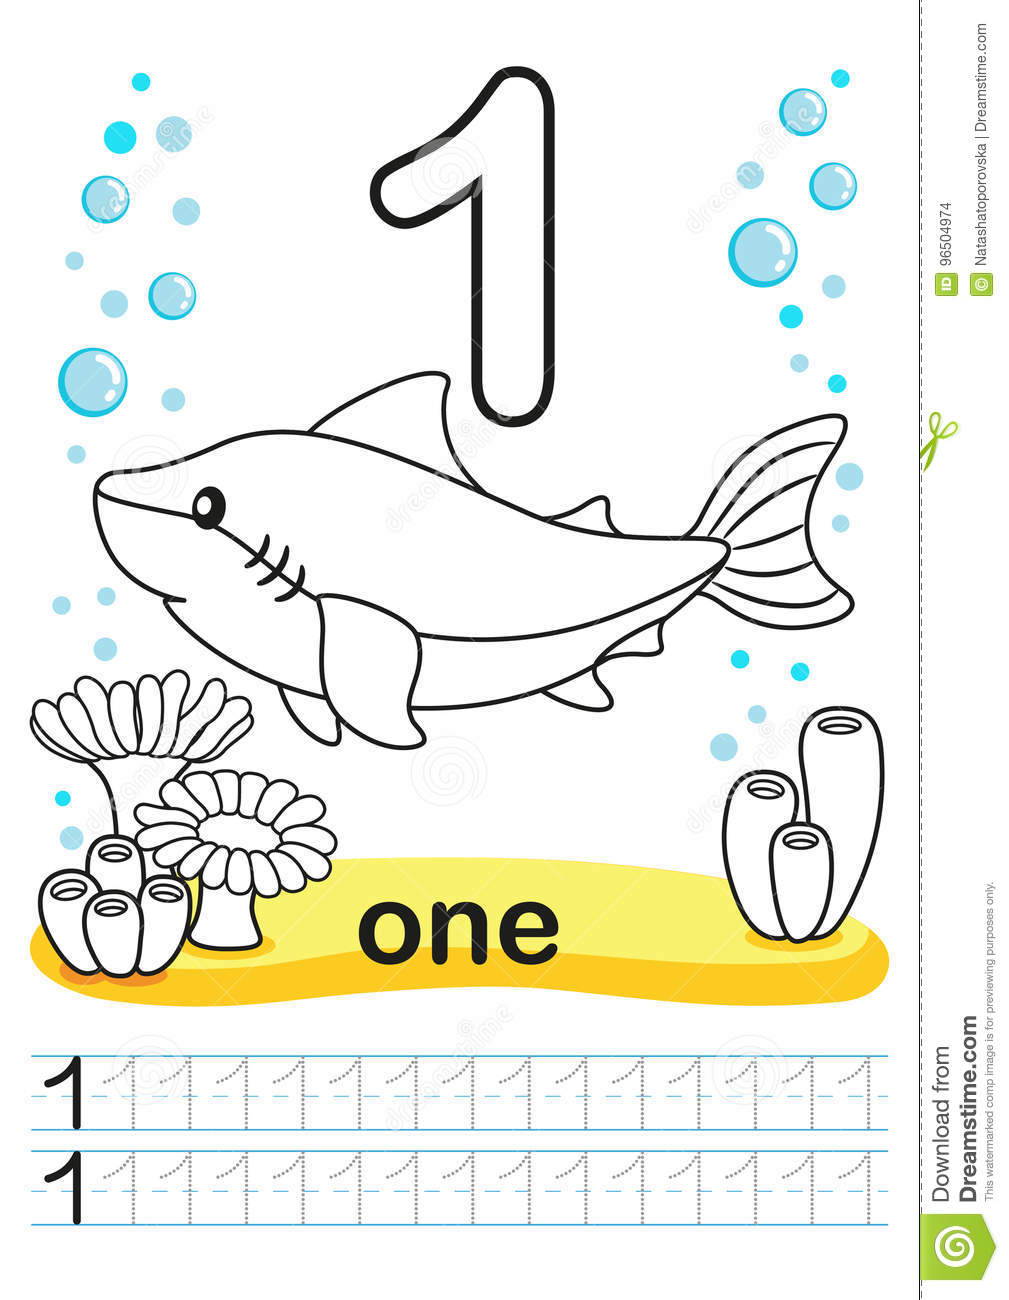 coloring printable worksheet for kindergarten and preschool we